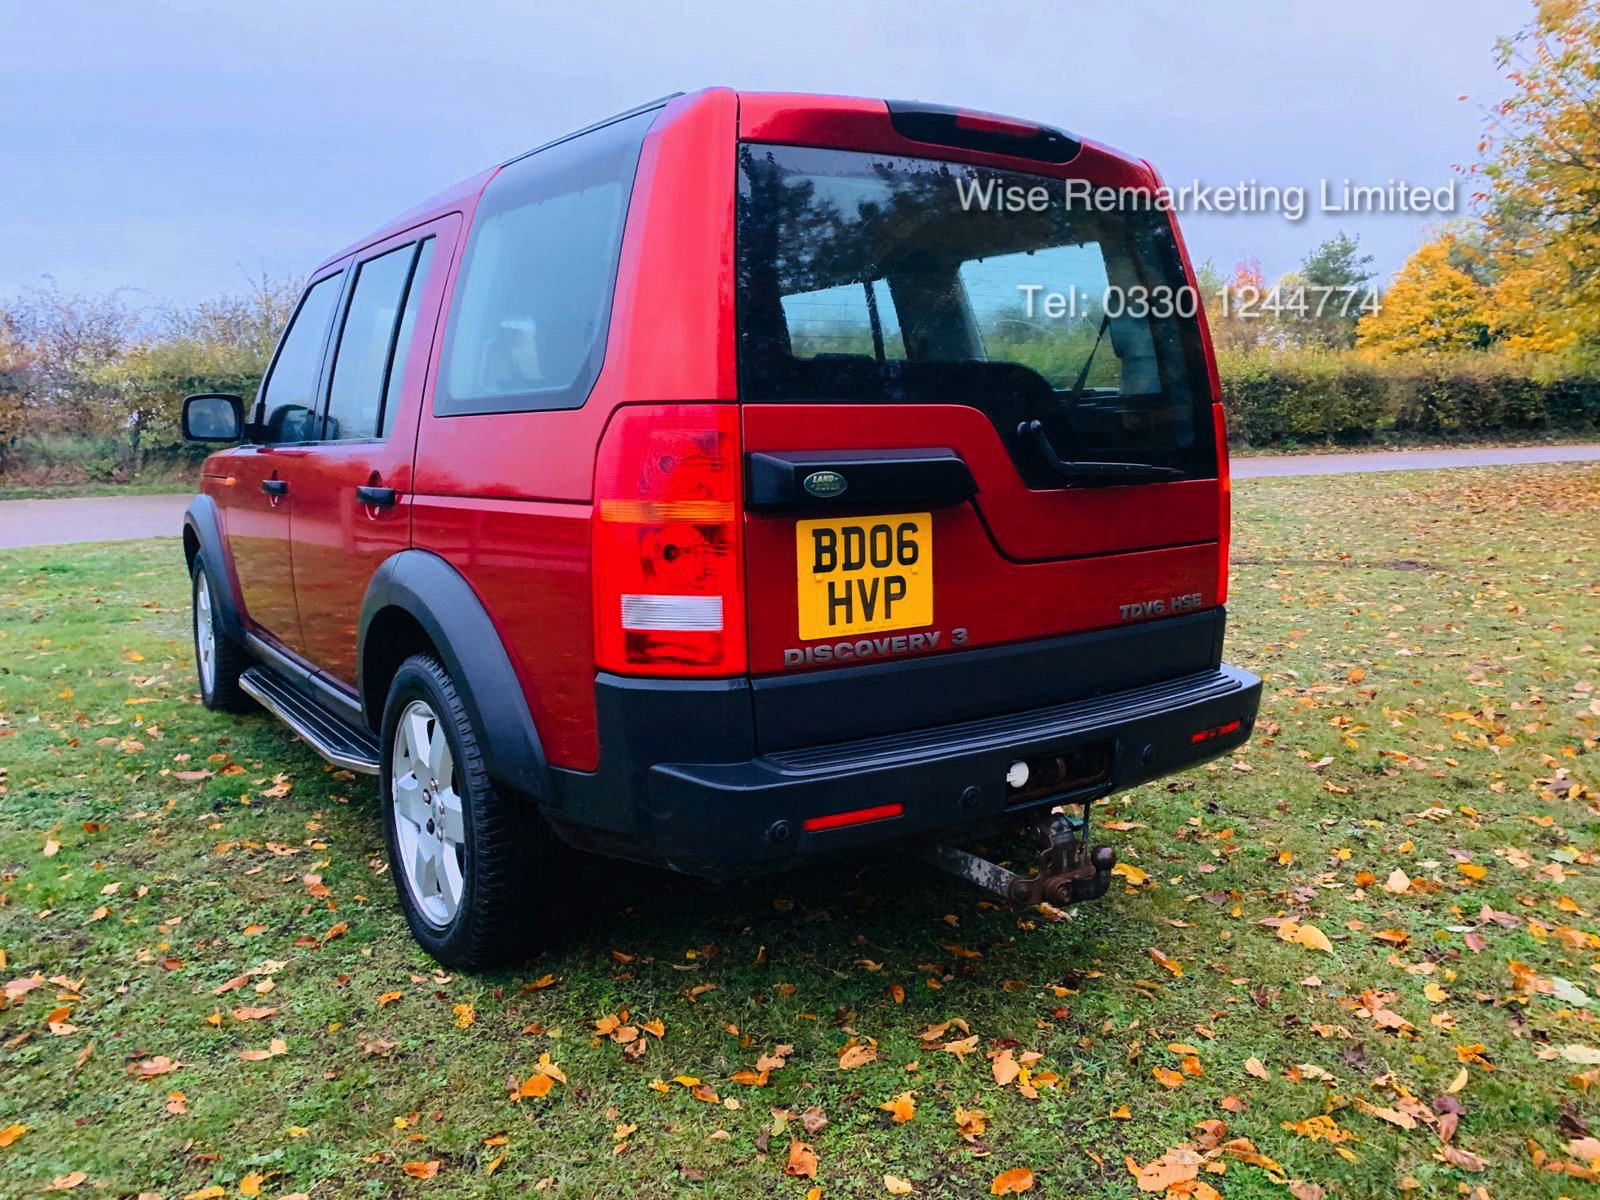 Lot 17 - Land Rover Discovery 2.7 TDV6 HSE Auto - 2006 06 Reg - Service History - TOP SPEC - Full Leather